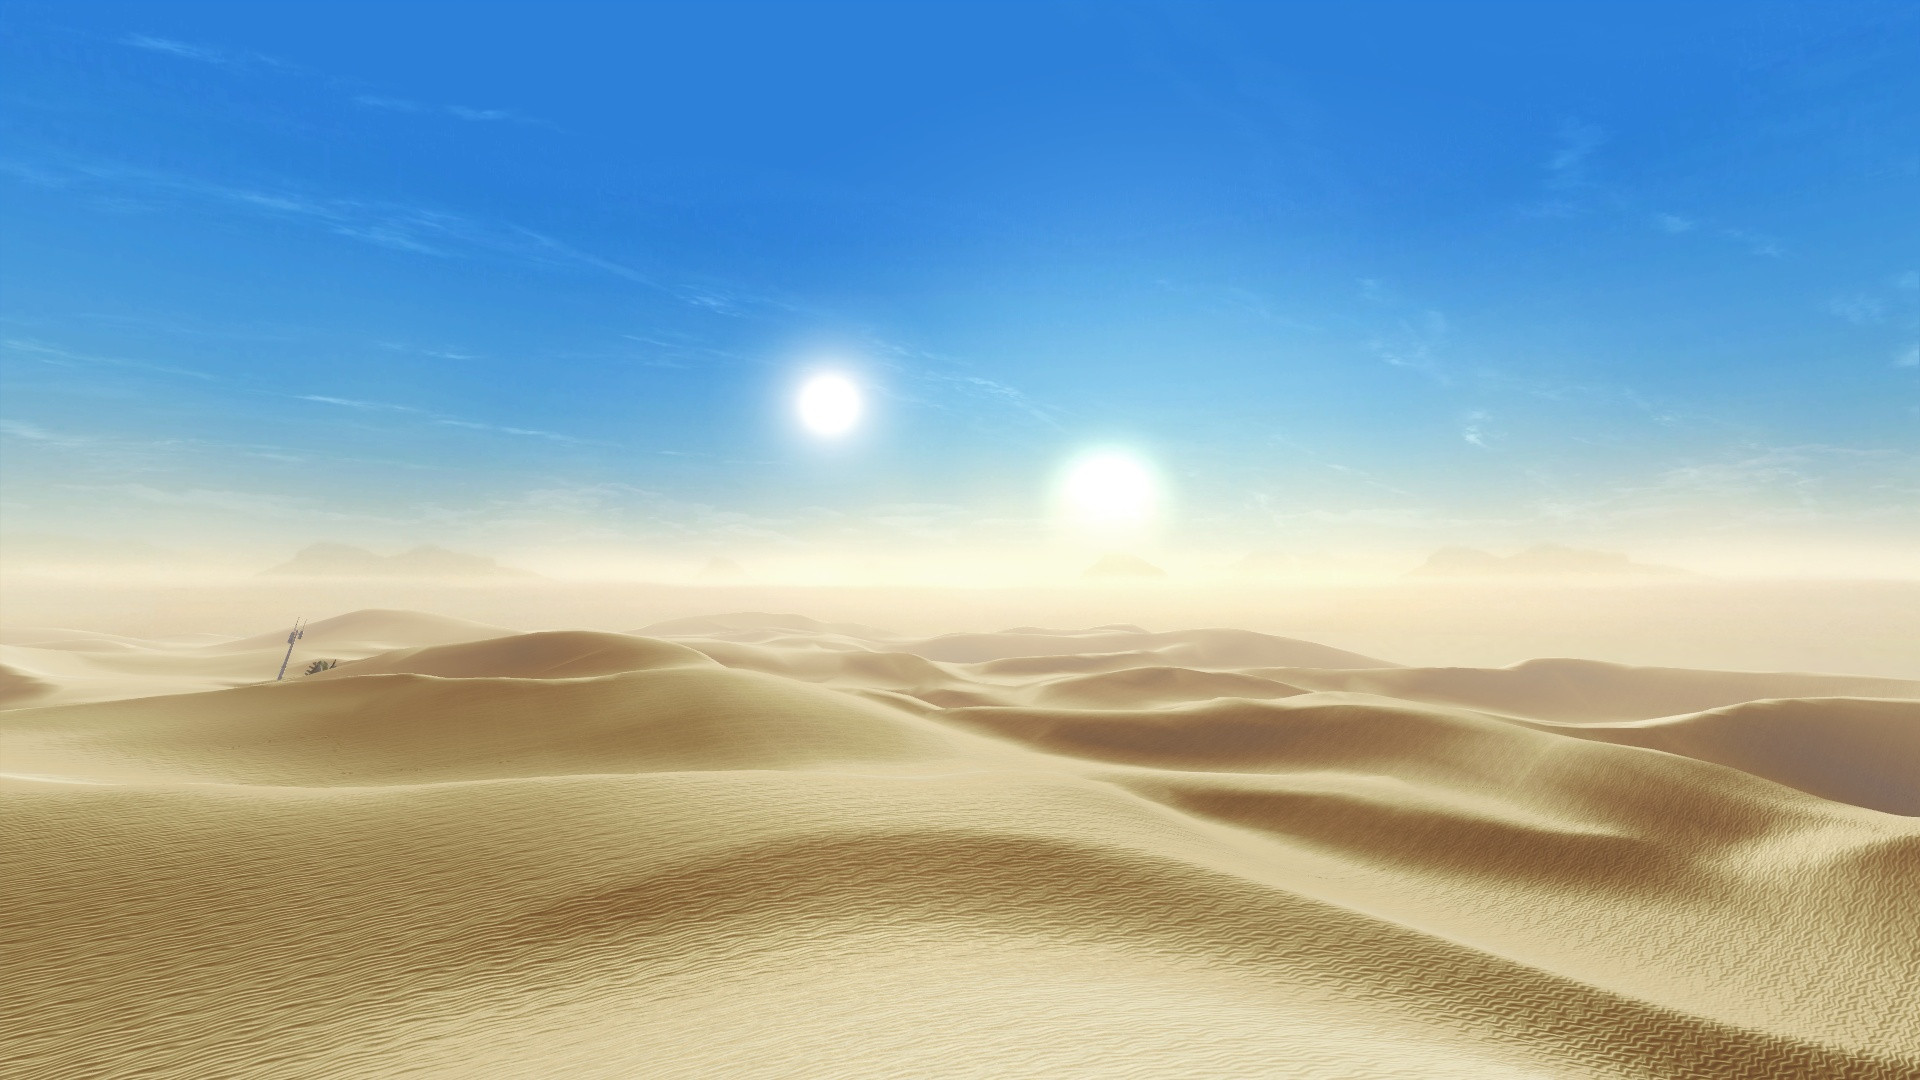 The ruthless beauty of Tatooine